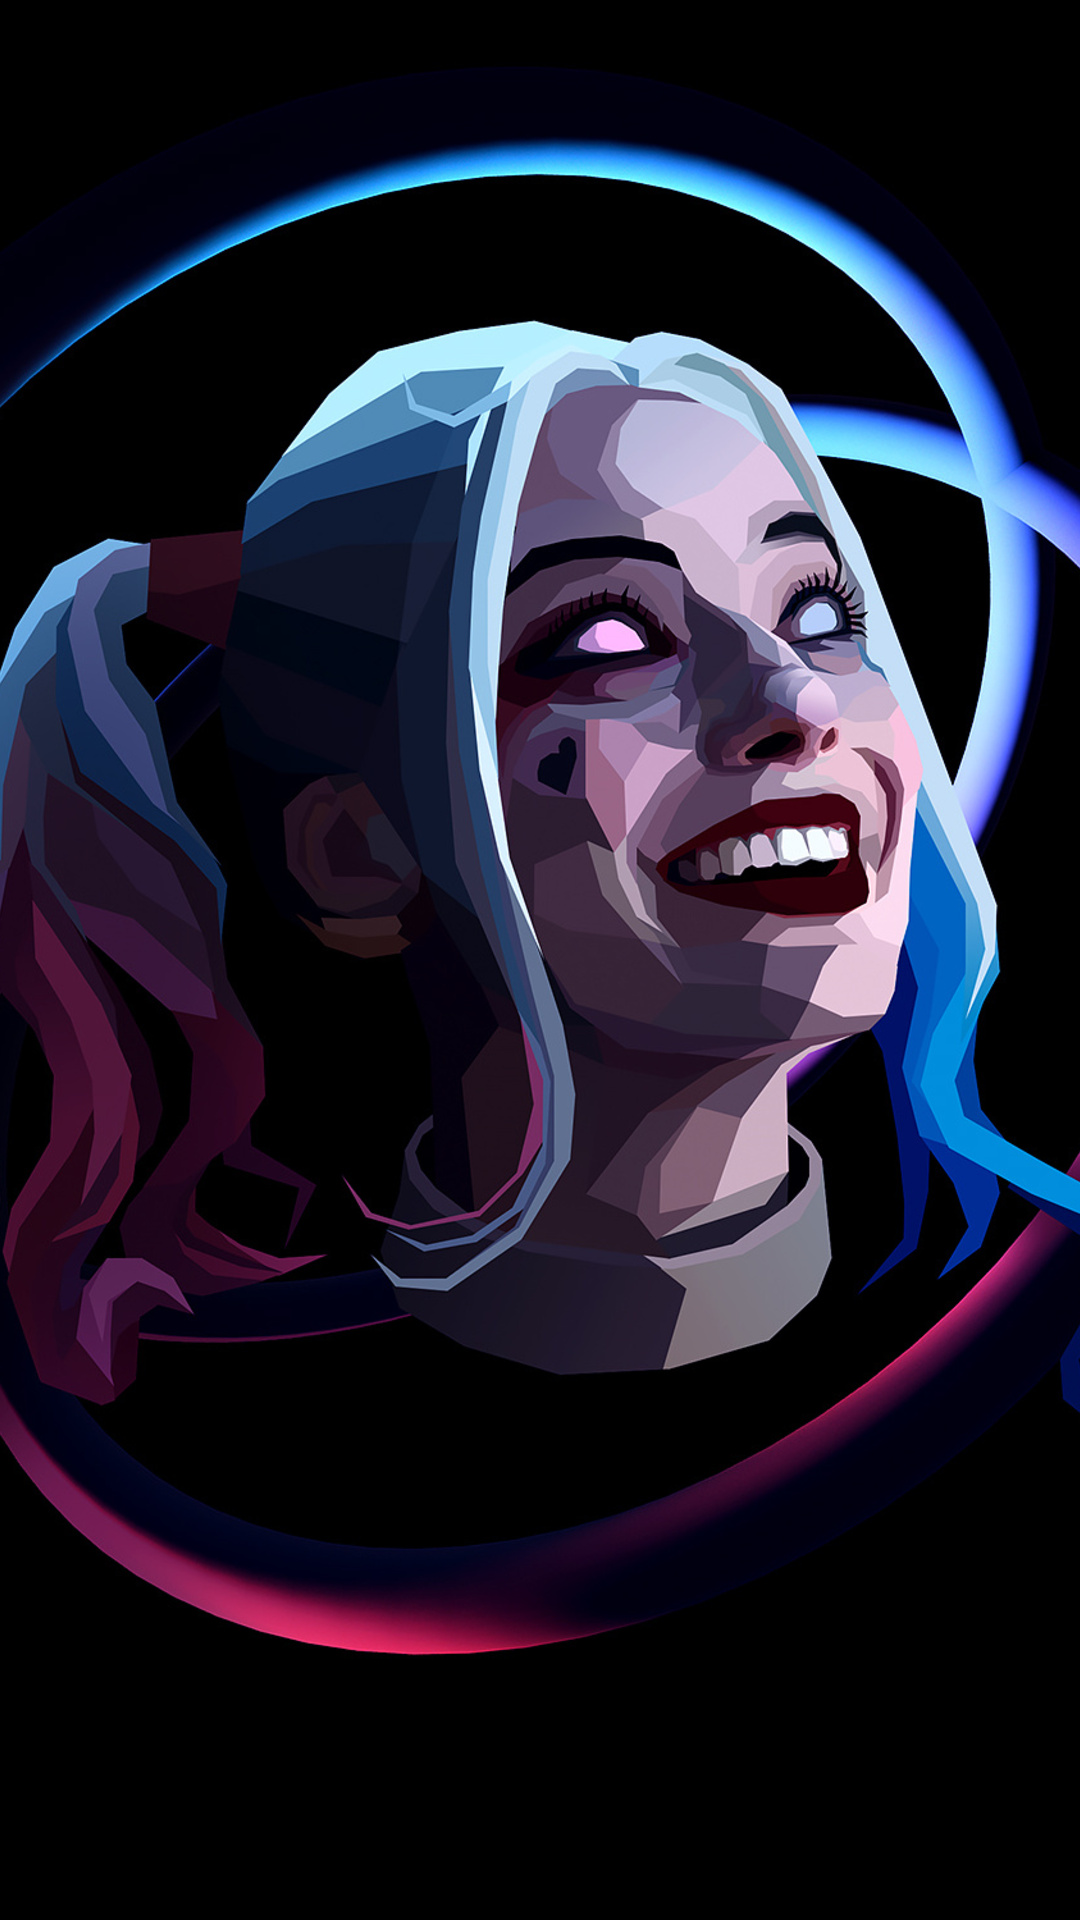 1080x1920 Harley Quinn Abstract Art Iphone 7 6s 6 Plus Pixel Xl